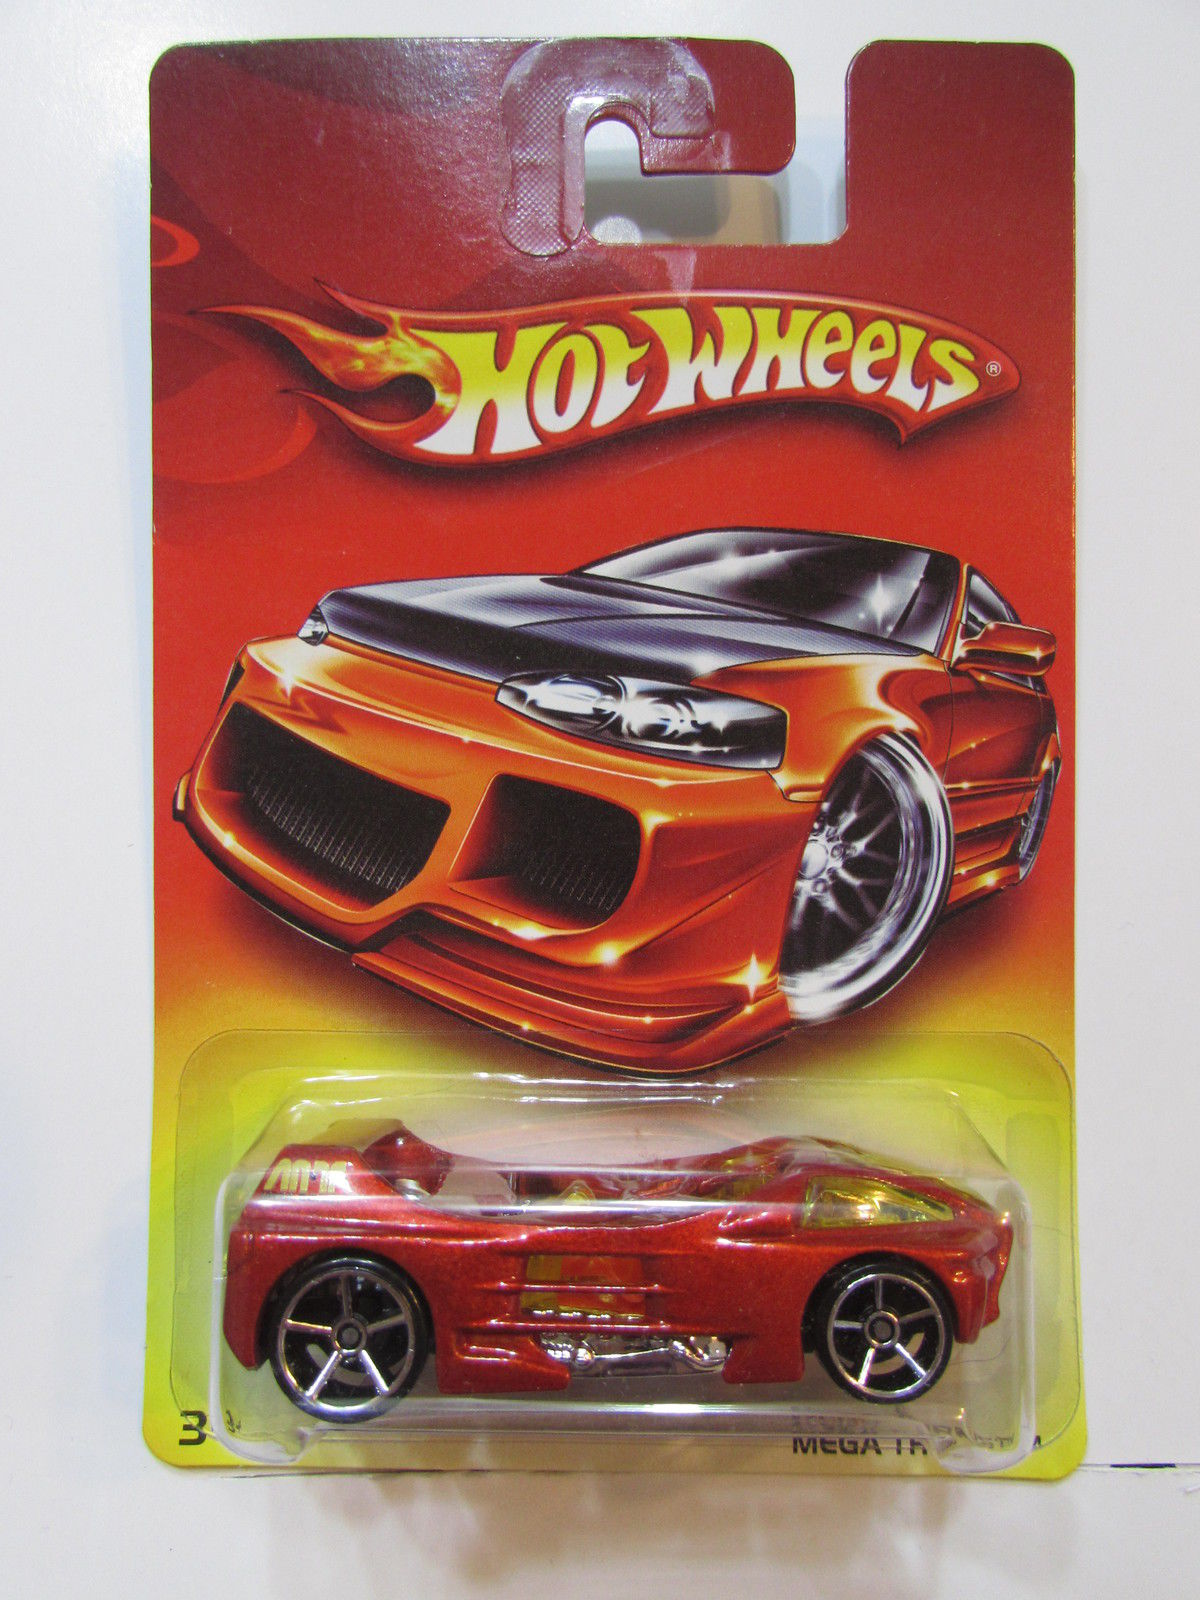 HOT WHEELS WALMART MEGA THRUST